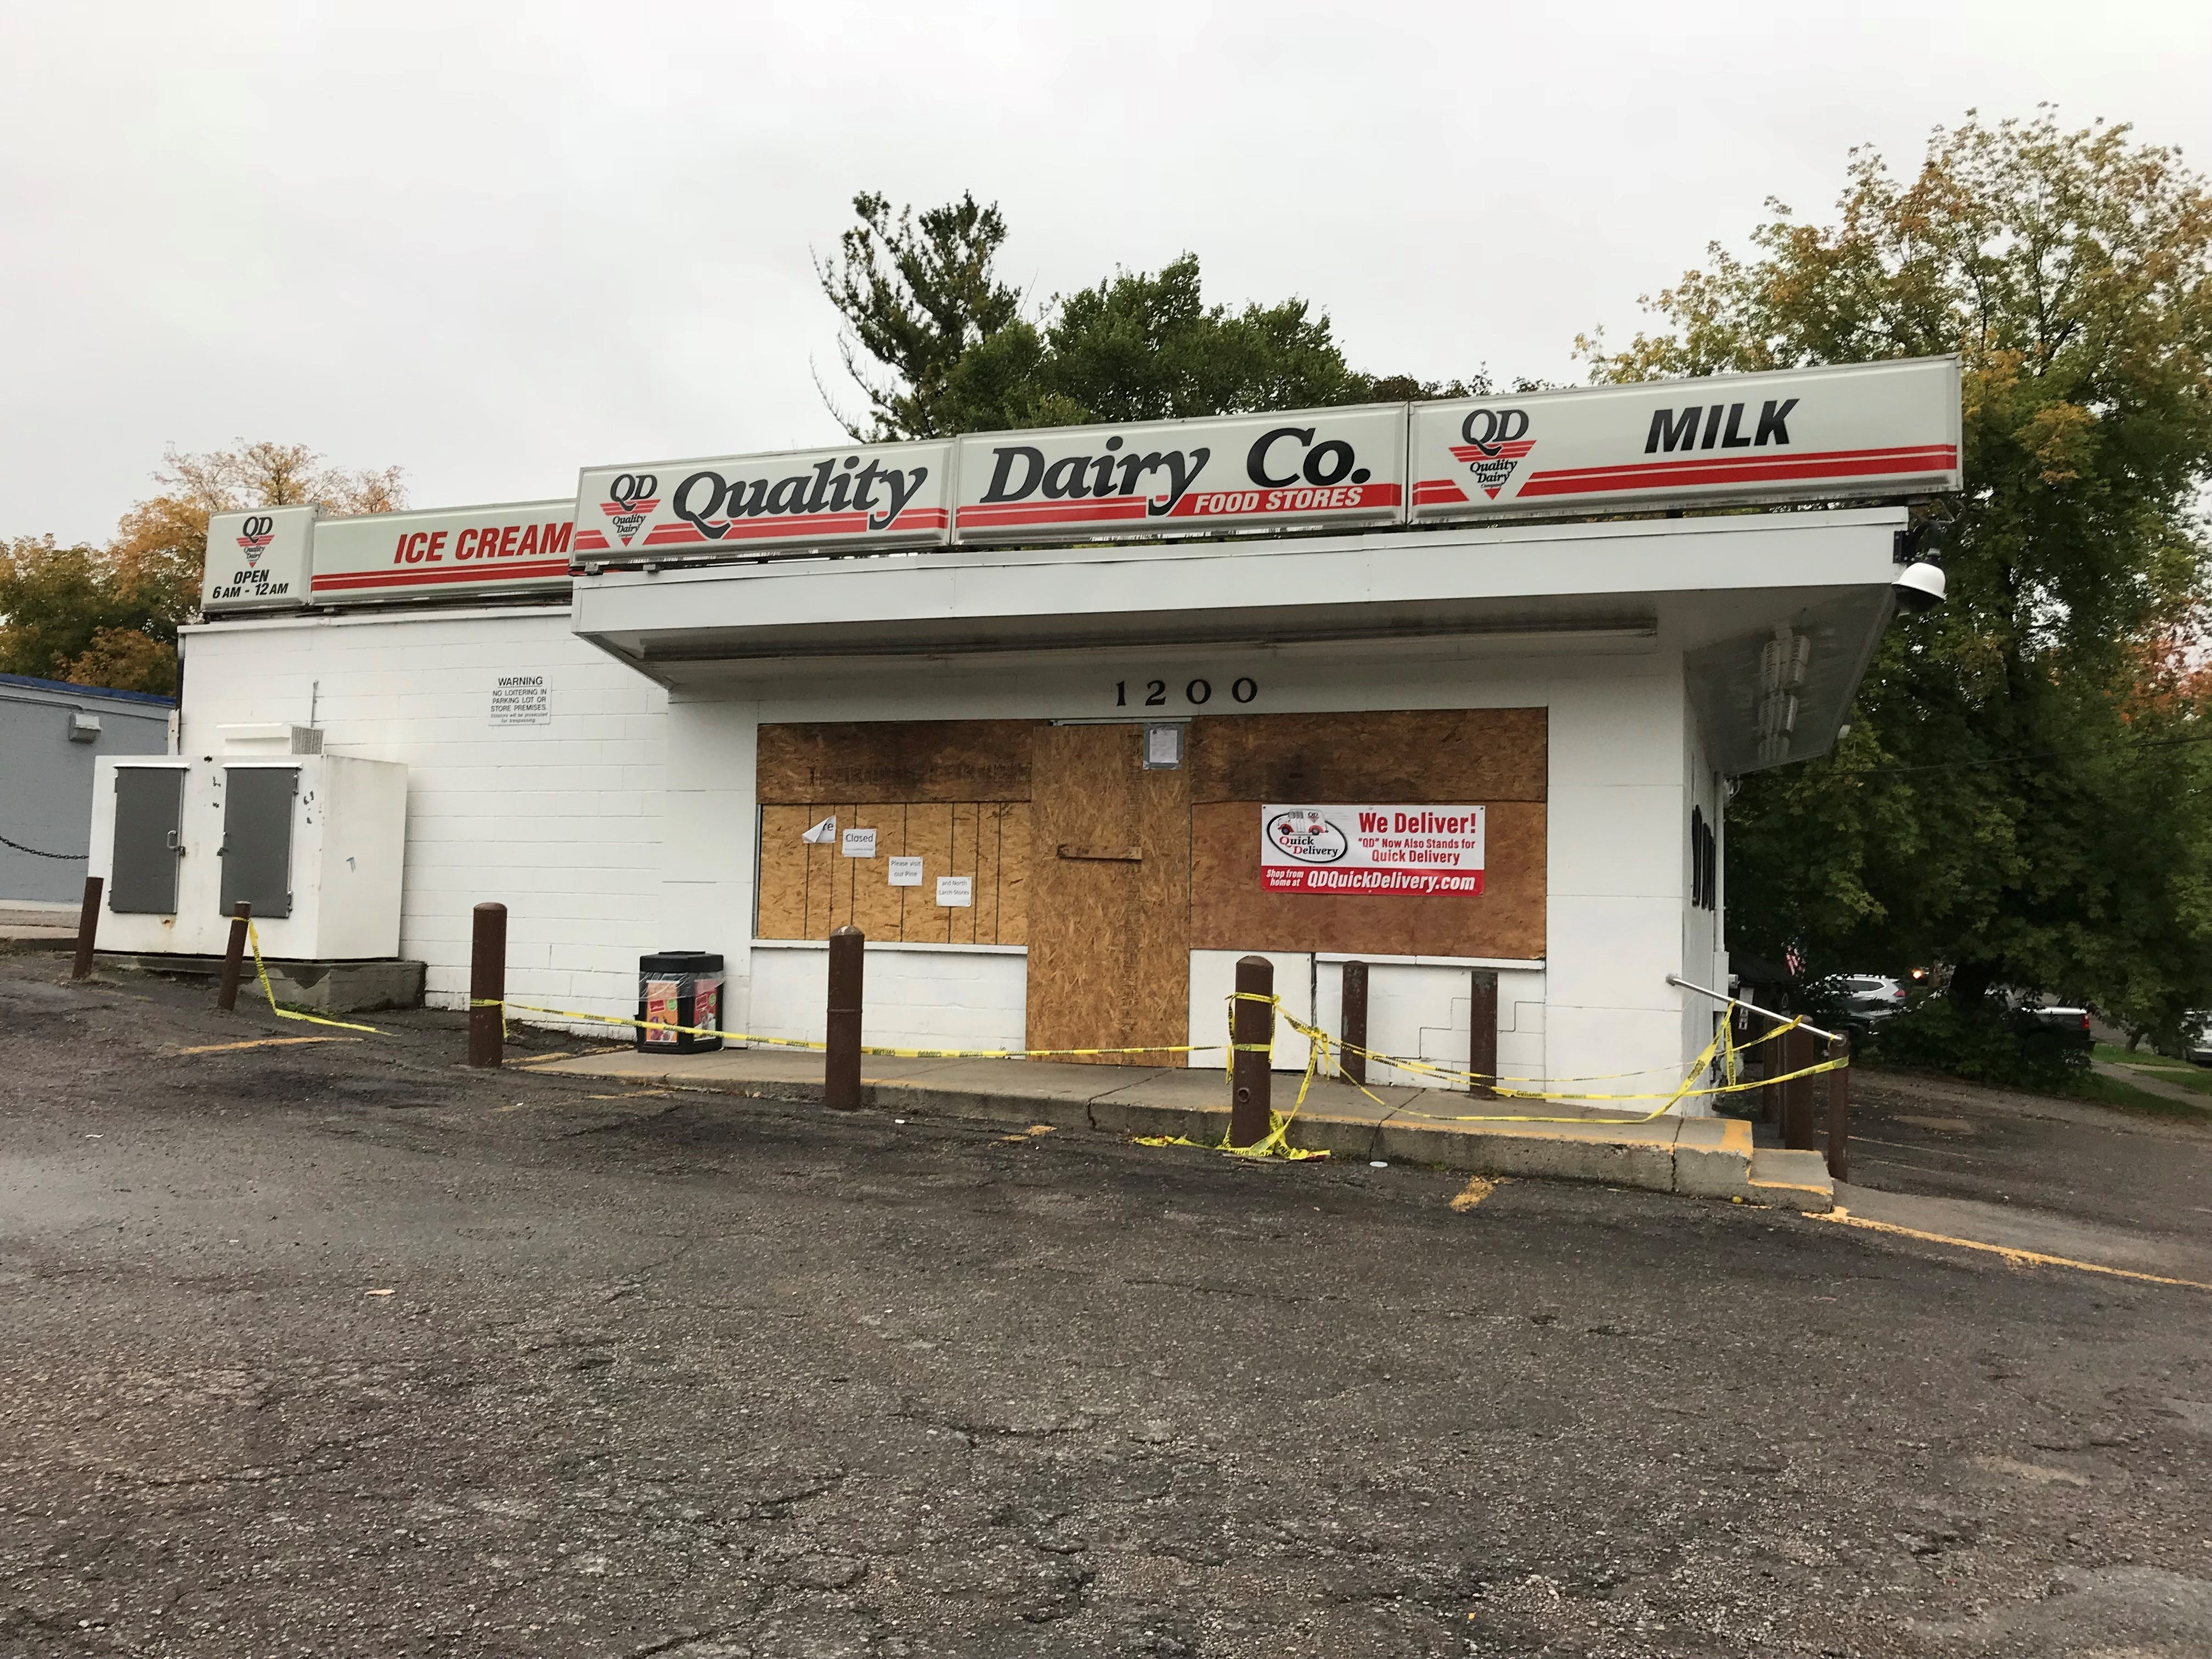 Lansing police said a 56-year-old man had a medical emergency at about 8 p.m. Sept. 23 while he attempted to park his vehicle in front of a Quality Dairy store at 200 W. Willow St. in Lansing. This photo of the boarded up store was taken Oct. 6 by a State Journal reporter. The store remains closed.